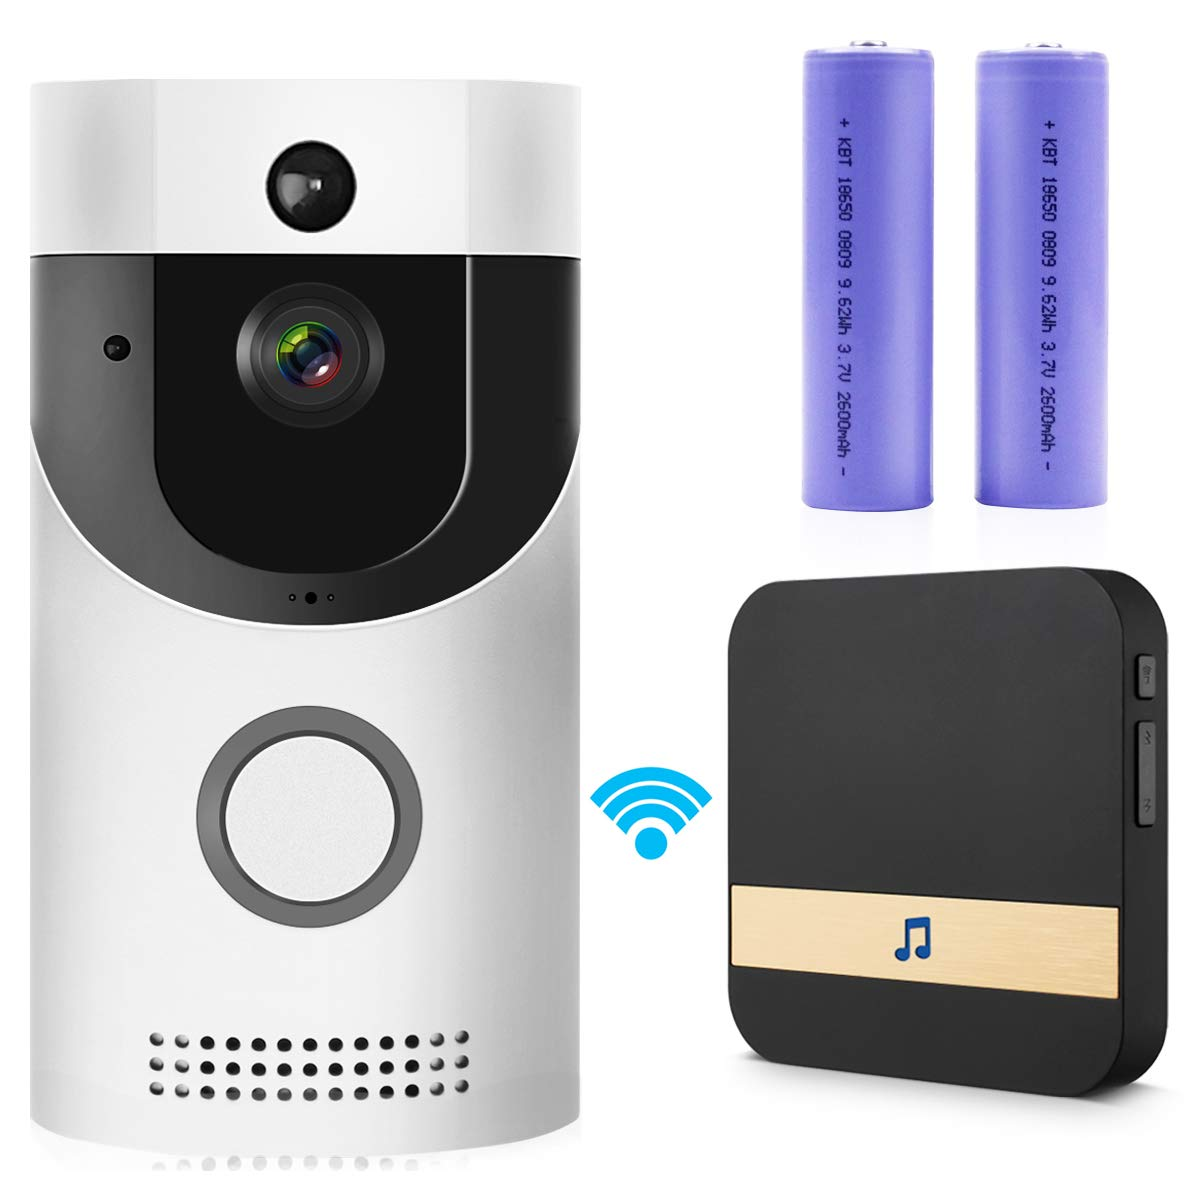 WIFI Video Doorbell, Smart Doorbell HD Security Camera with Chime, Real-Time Two-Way Talk and Video, Night Vision, PIR Motion Detection, ultra-slim design and App Control for IOS and An (Silver)